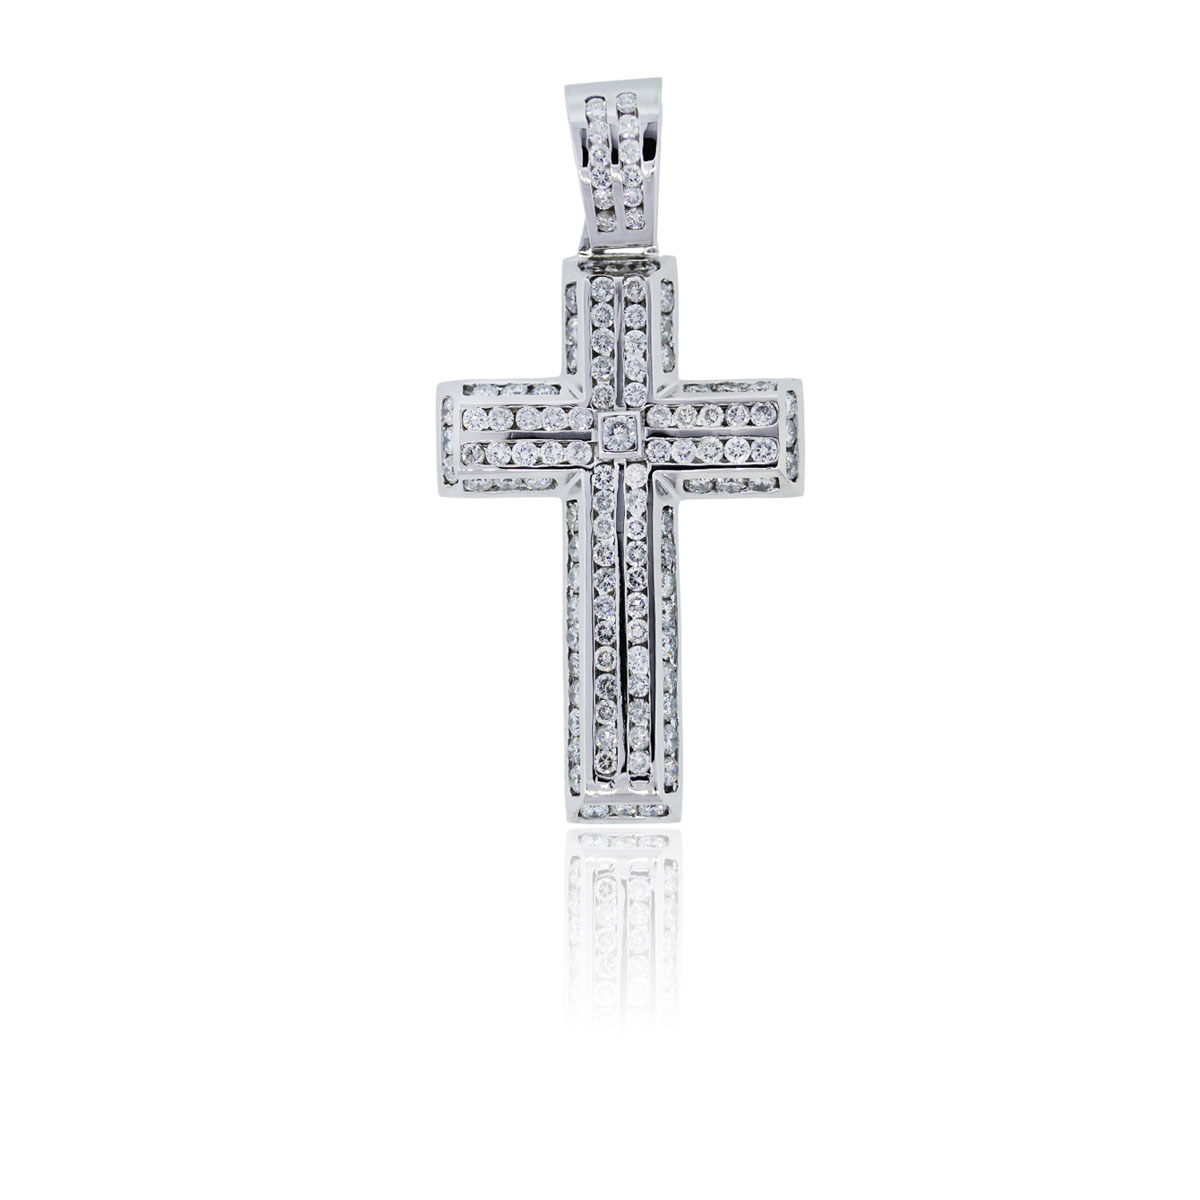 You are viewing this 14k White Gold, 6.50 Carat Diamond Pave Cross!